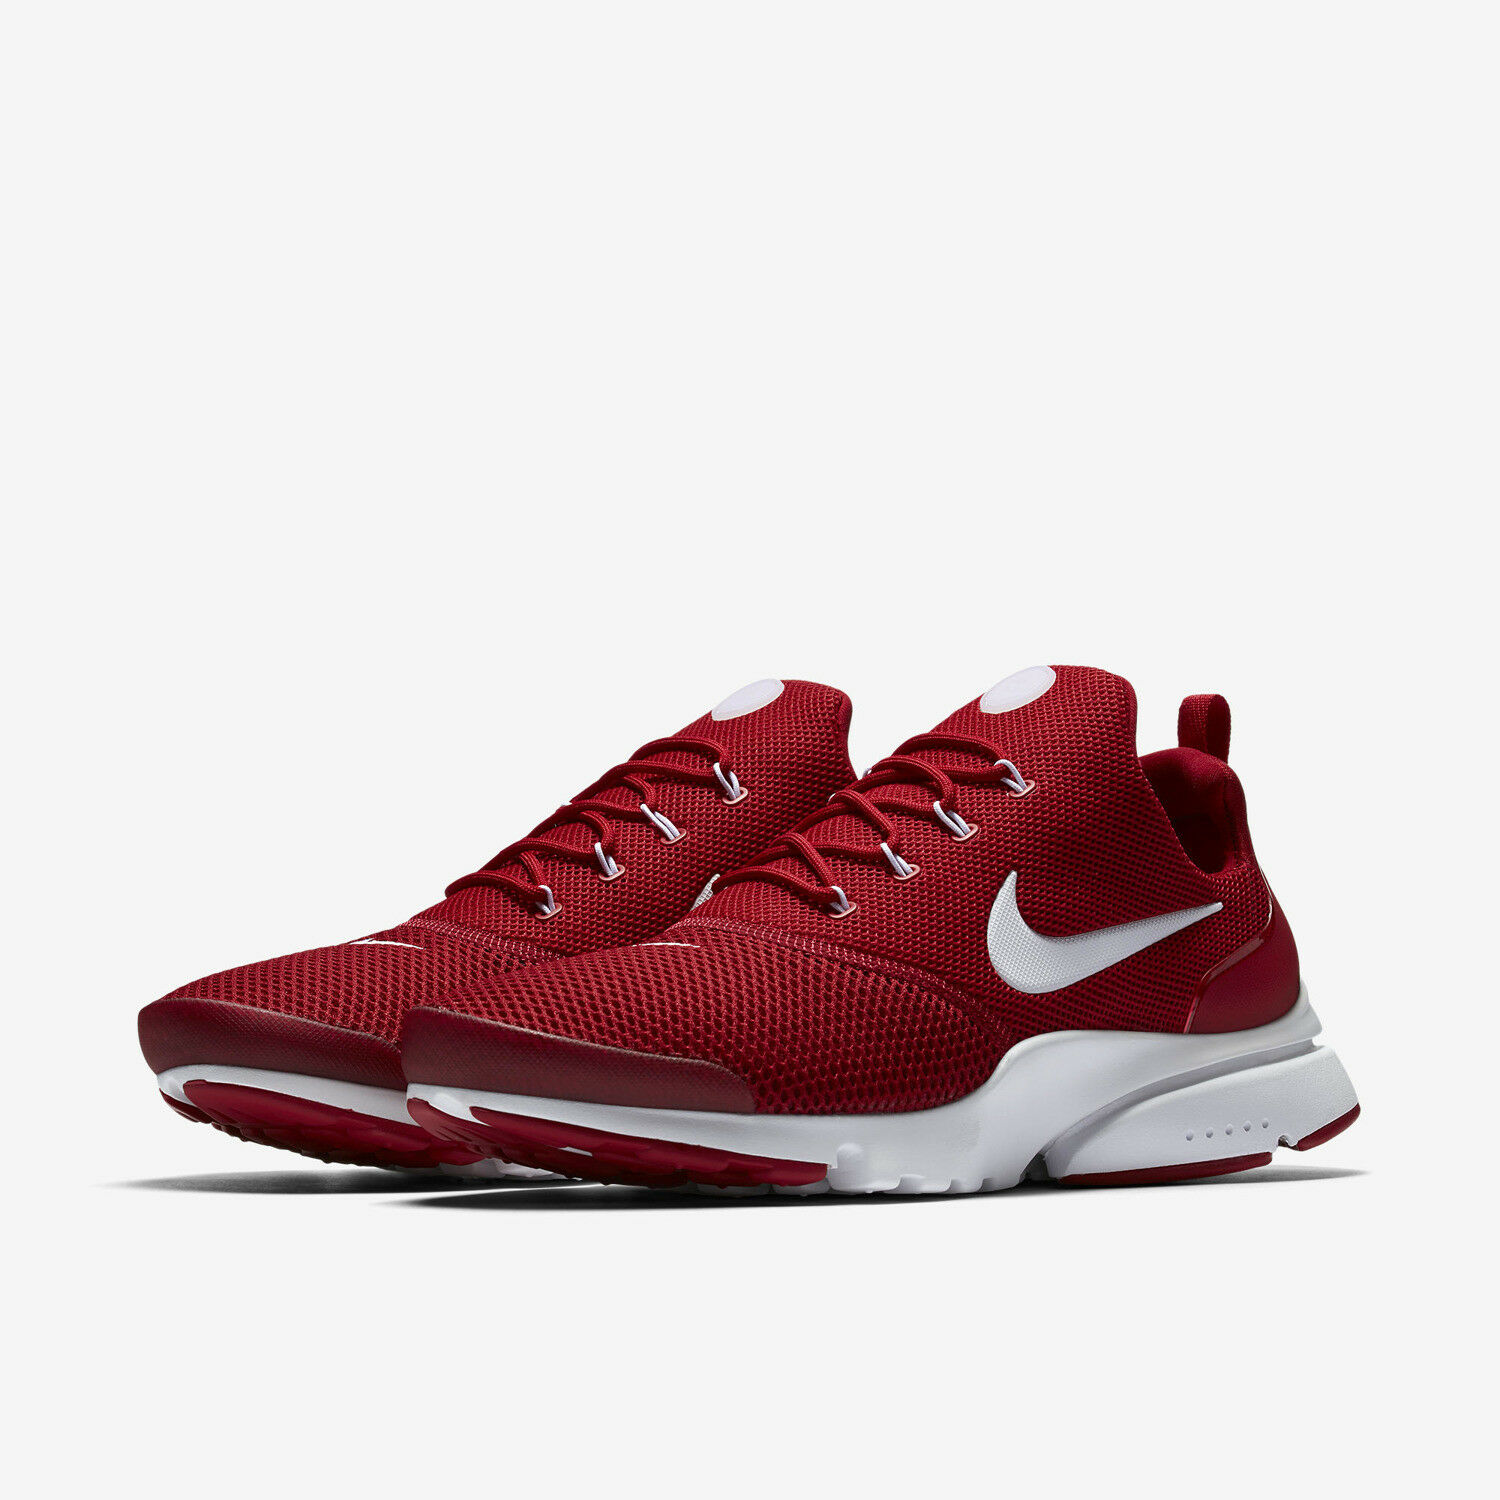 Uomo Nike Presto Fly 908019-600 Gym Red Brand New Size 10